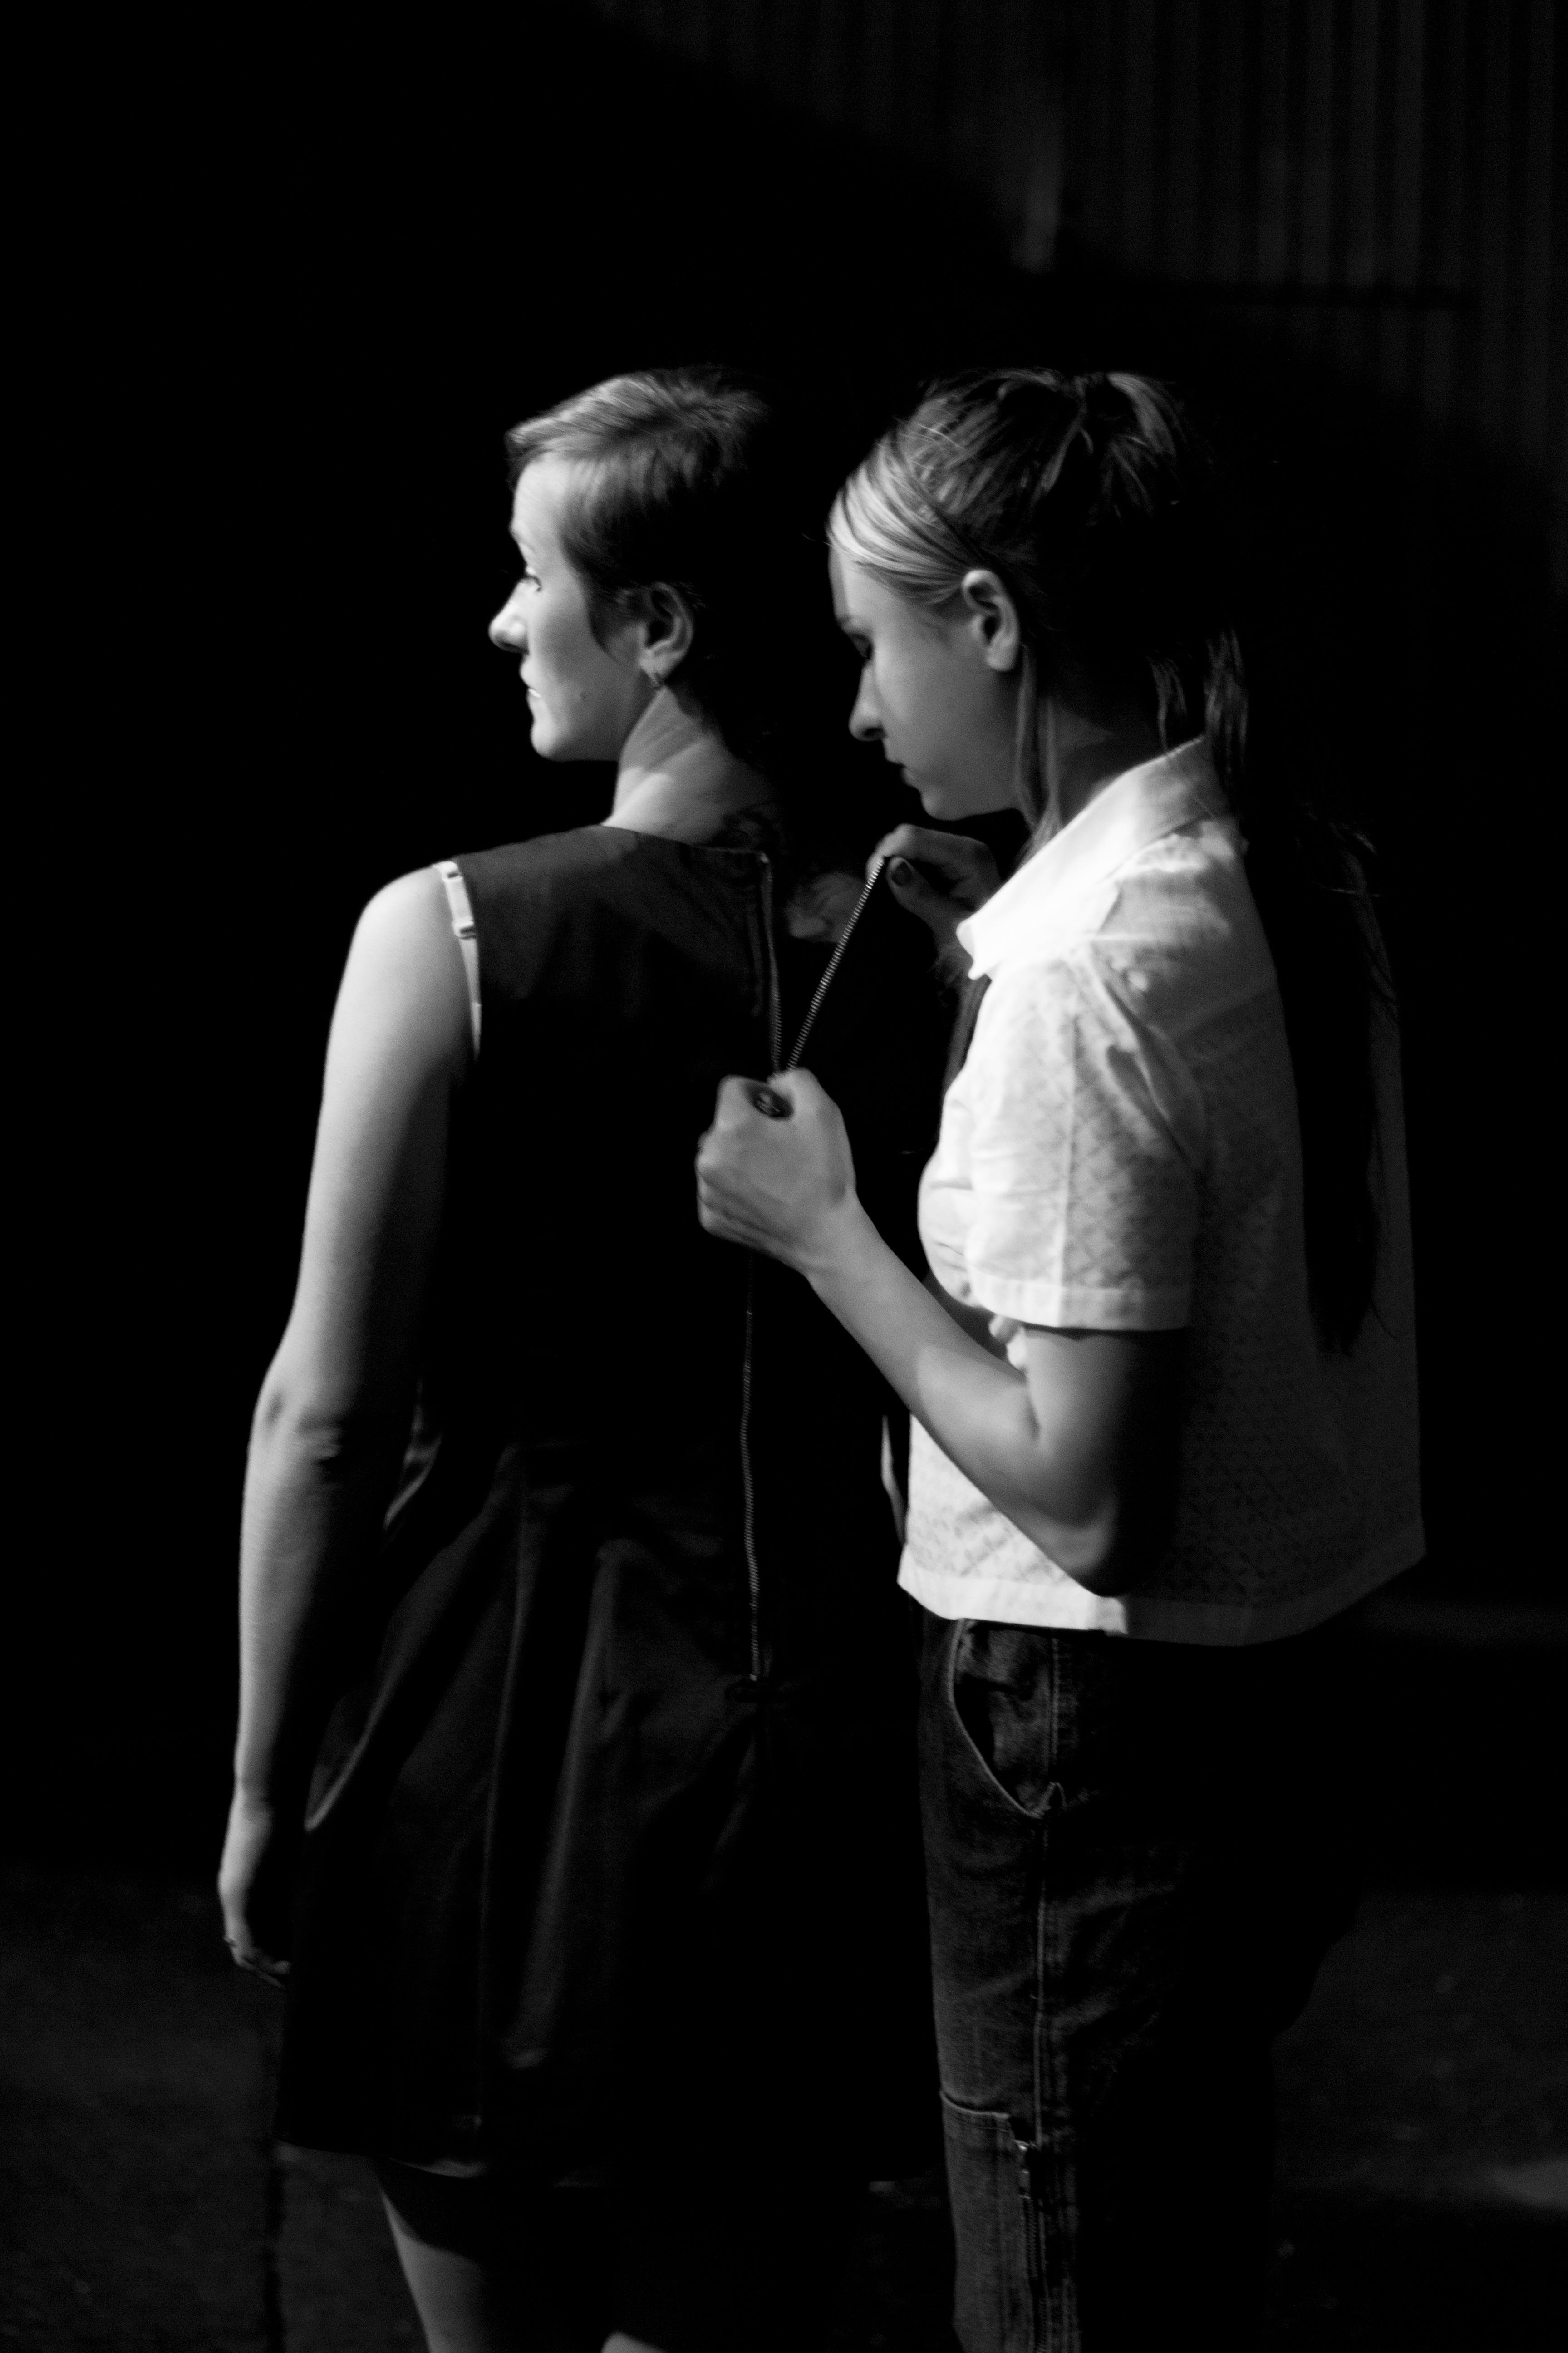 Silhouette of Two Girls Standing